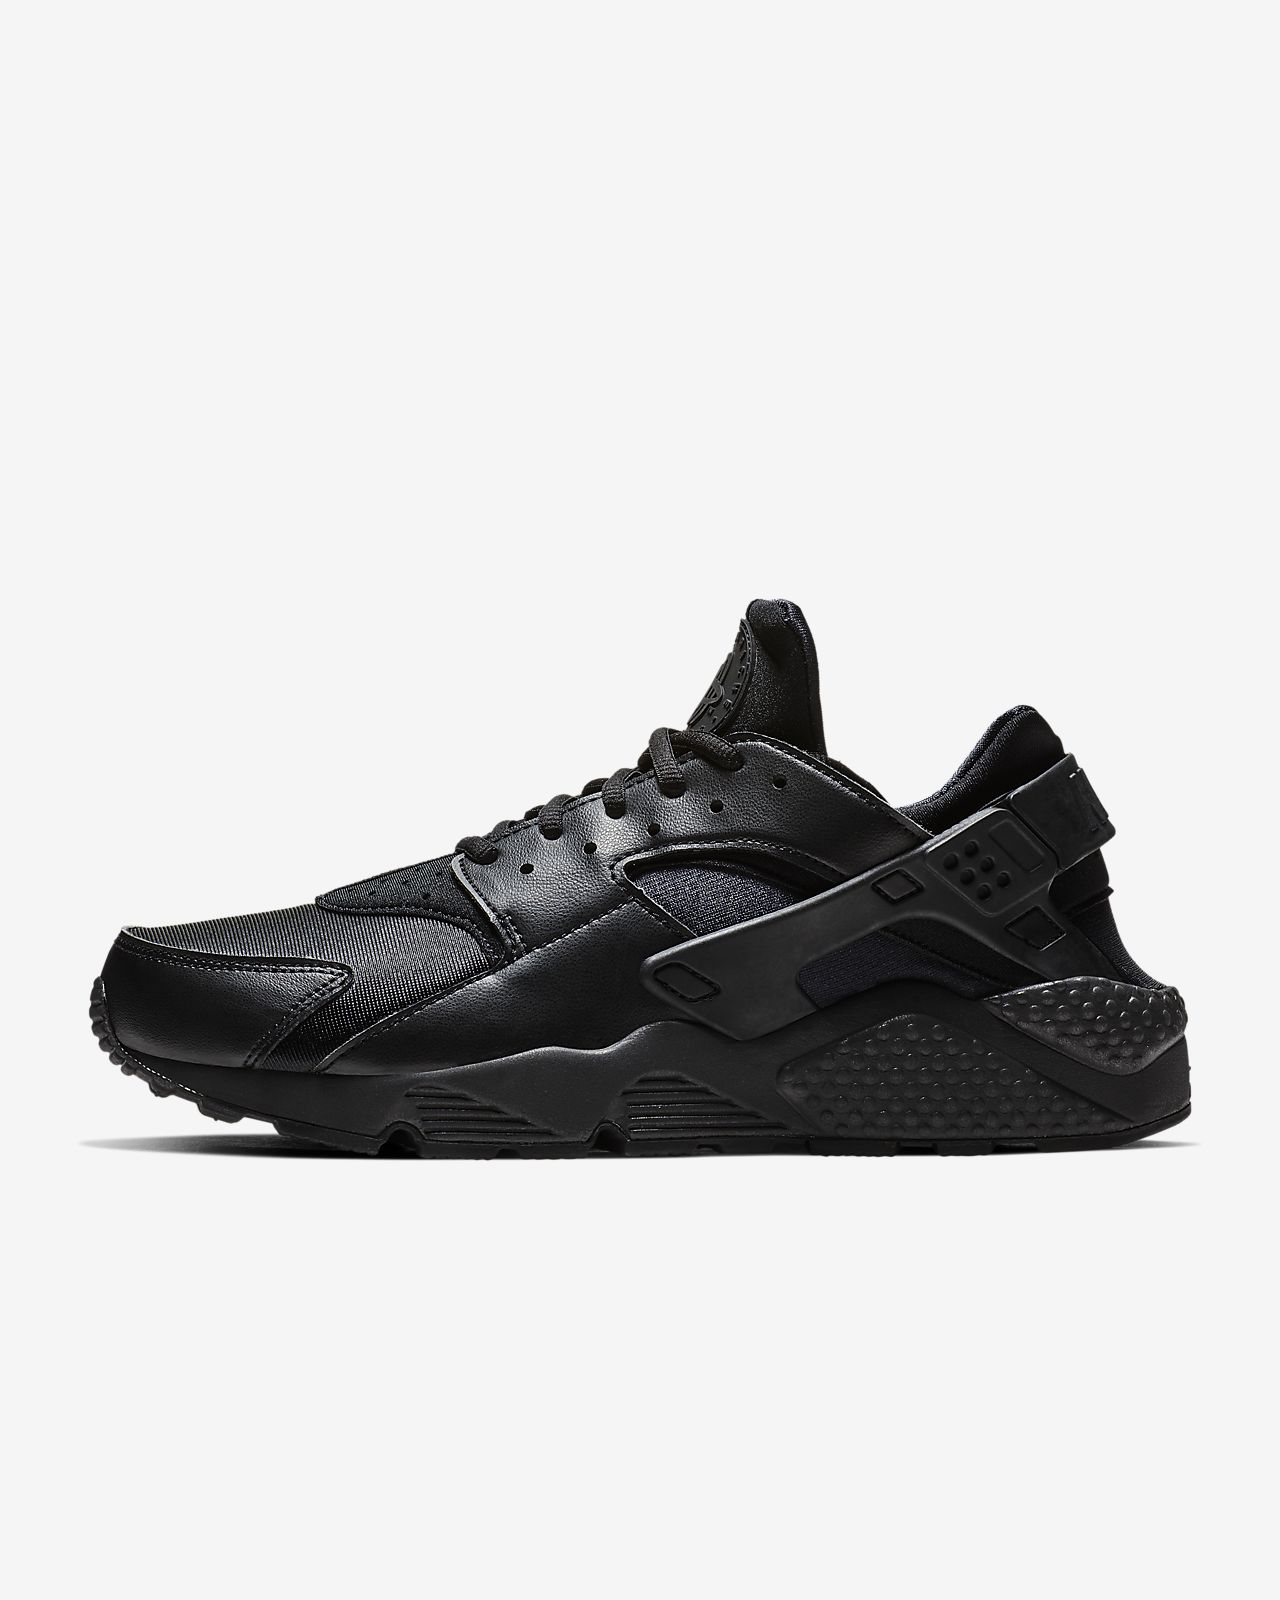 new style 524b4 765a8 Nike Air Huarache Women's Shoe